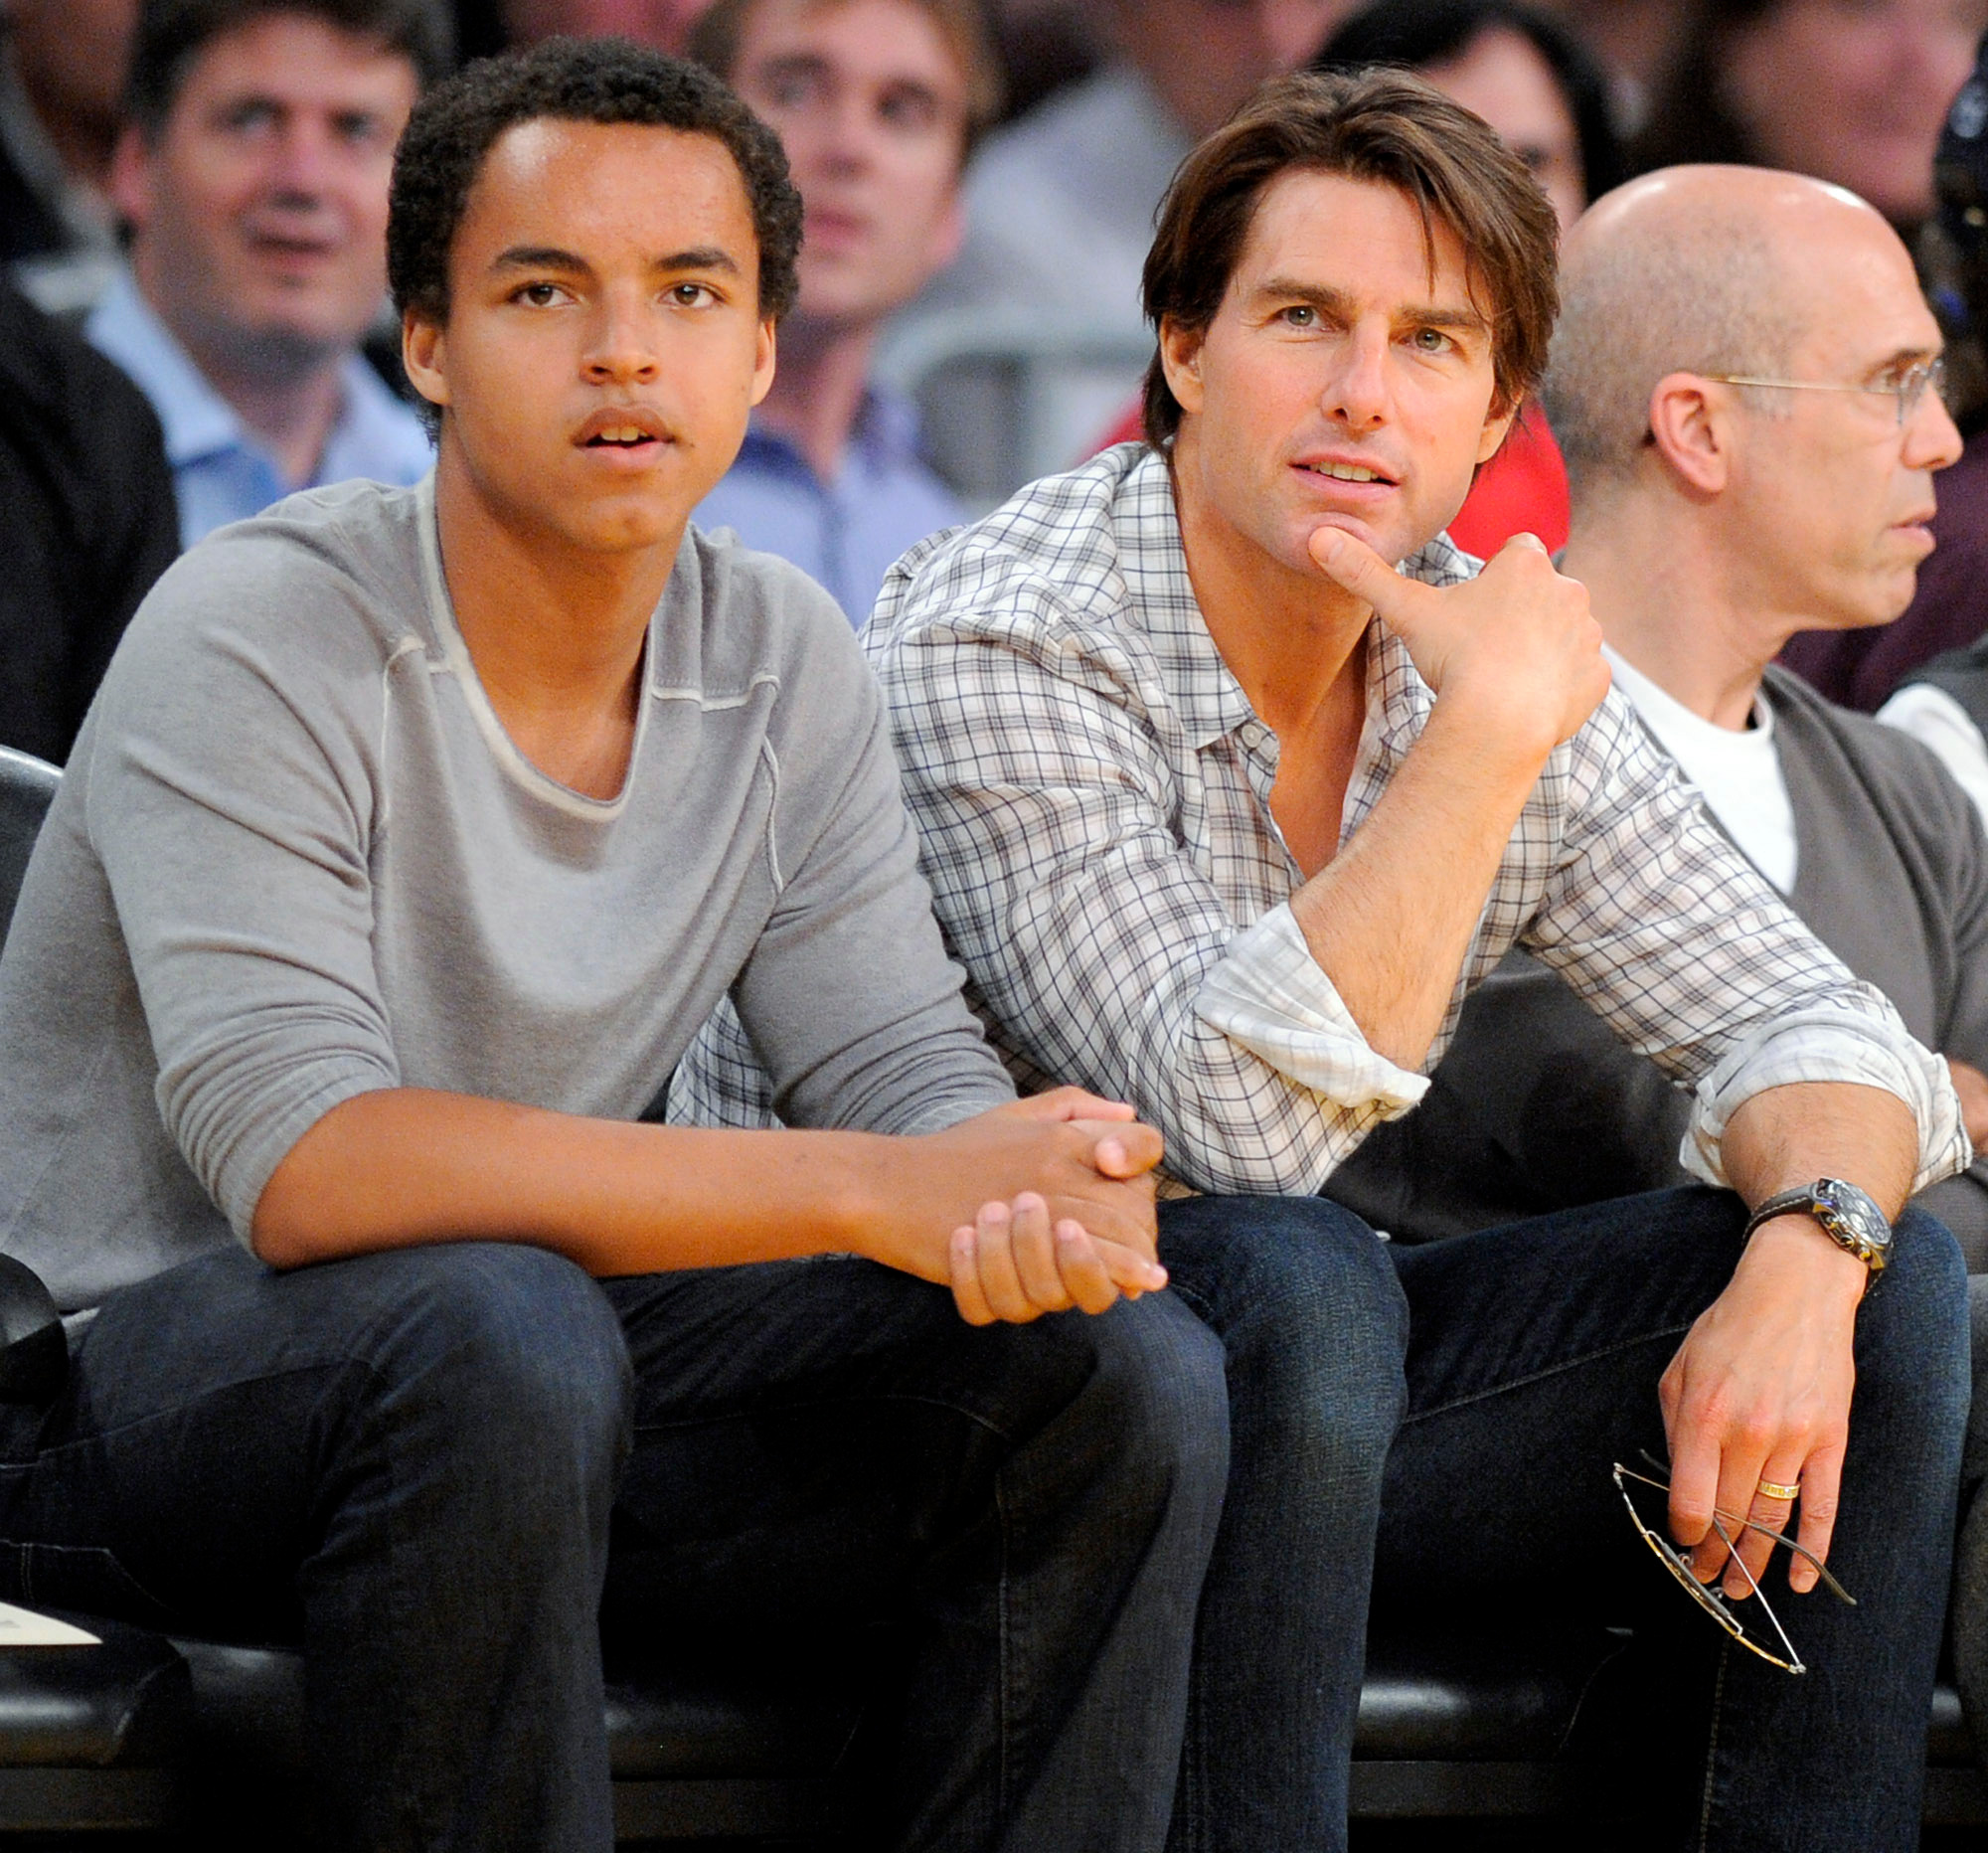 Tom Cruise with his son Connor caught in rare appearance: Here are Scientology split rumours